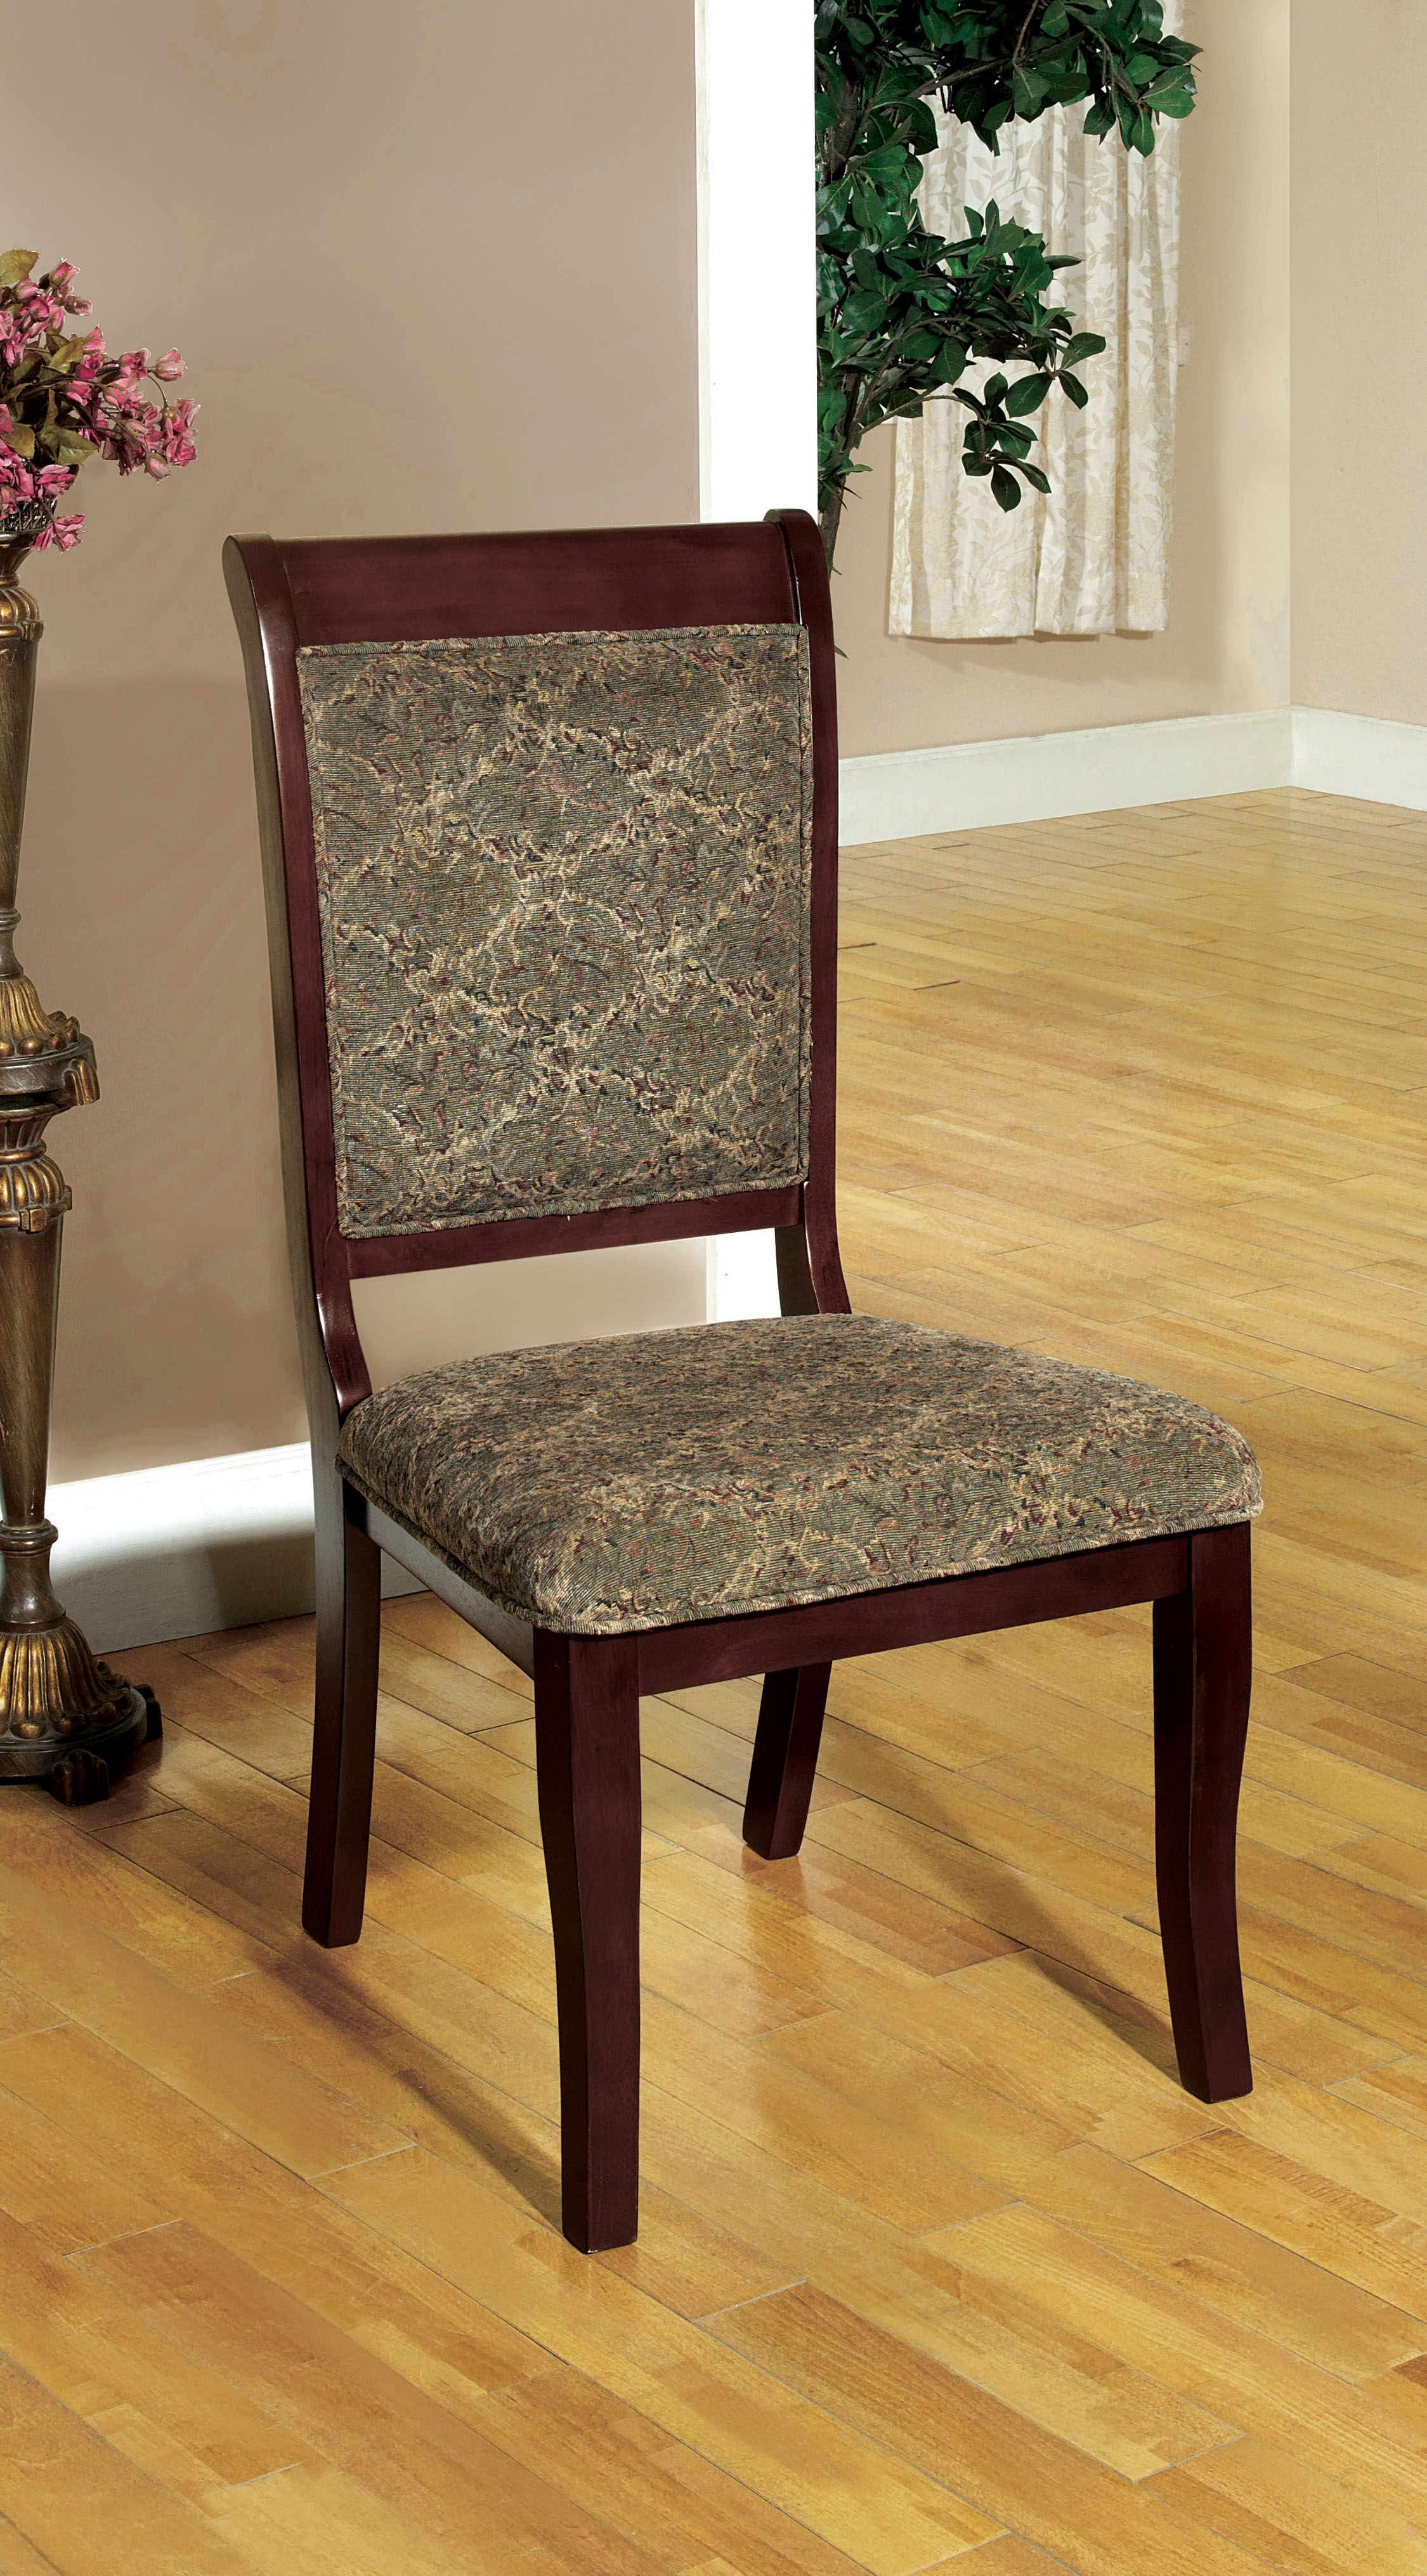 Furniture of America Curvas Antique Cherry Dining Side Chair (Set of 2), Brown